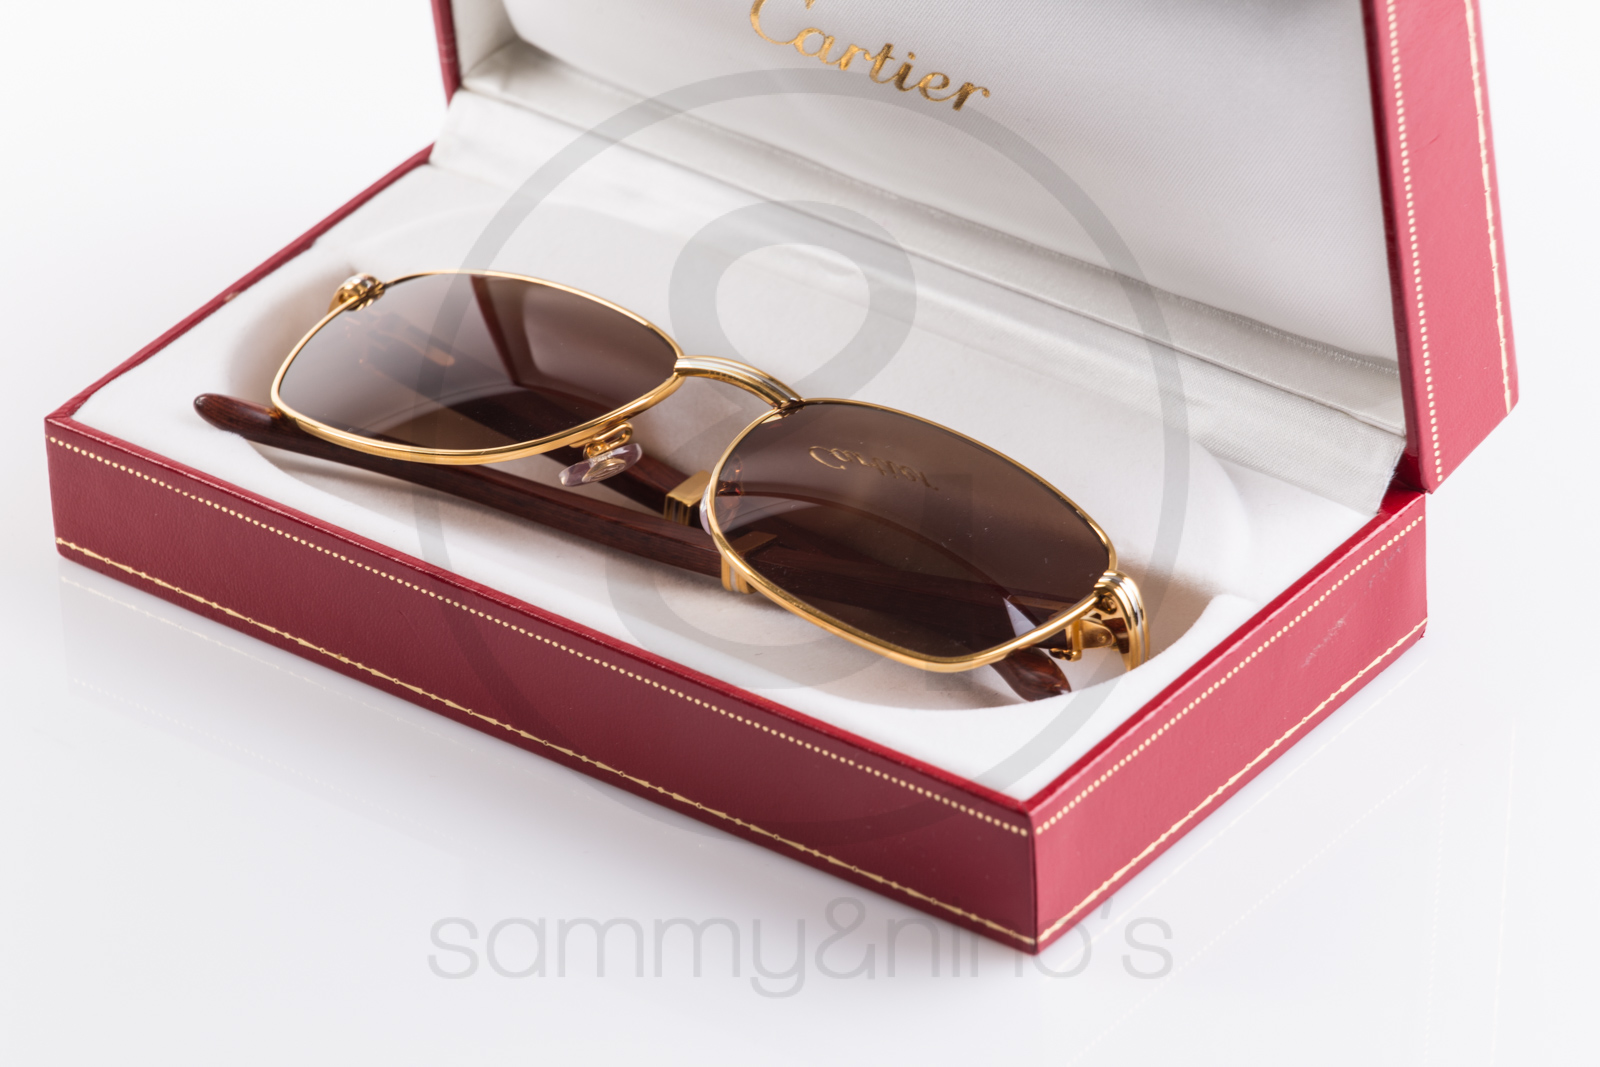 d999a6b168a1 Cartier Santos Dumont Aviator Platinum Wood Sunglasses - Restaurant ...